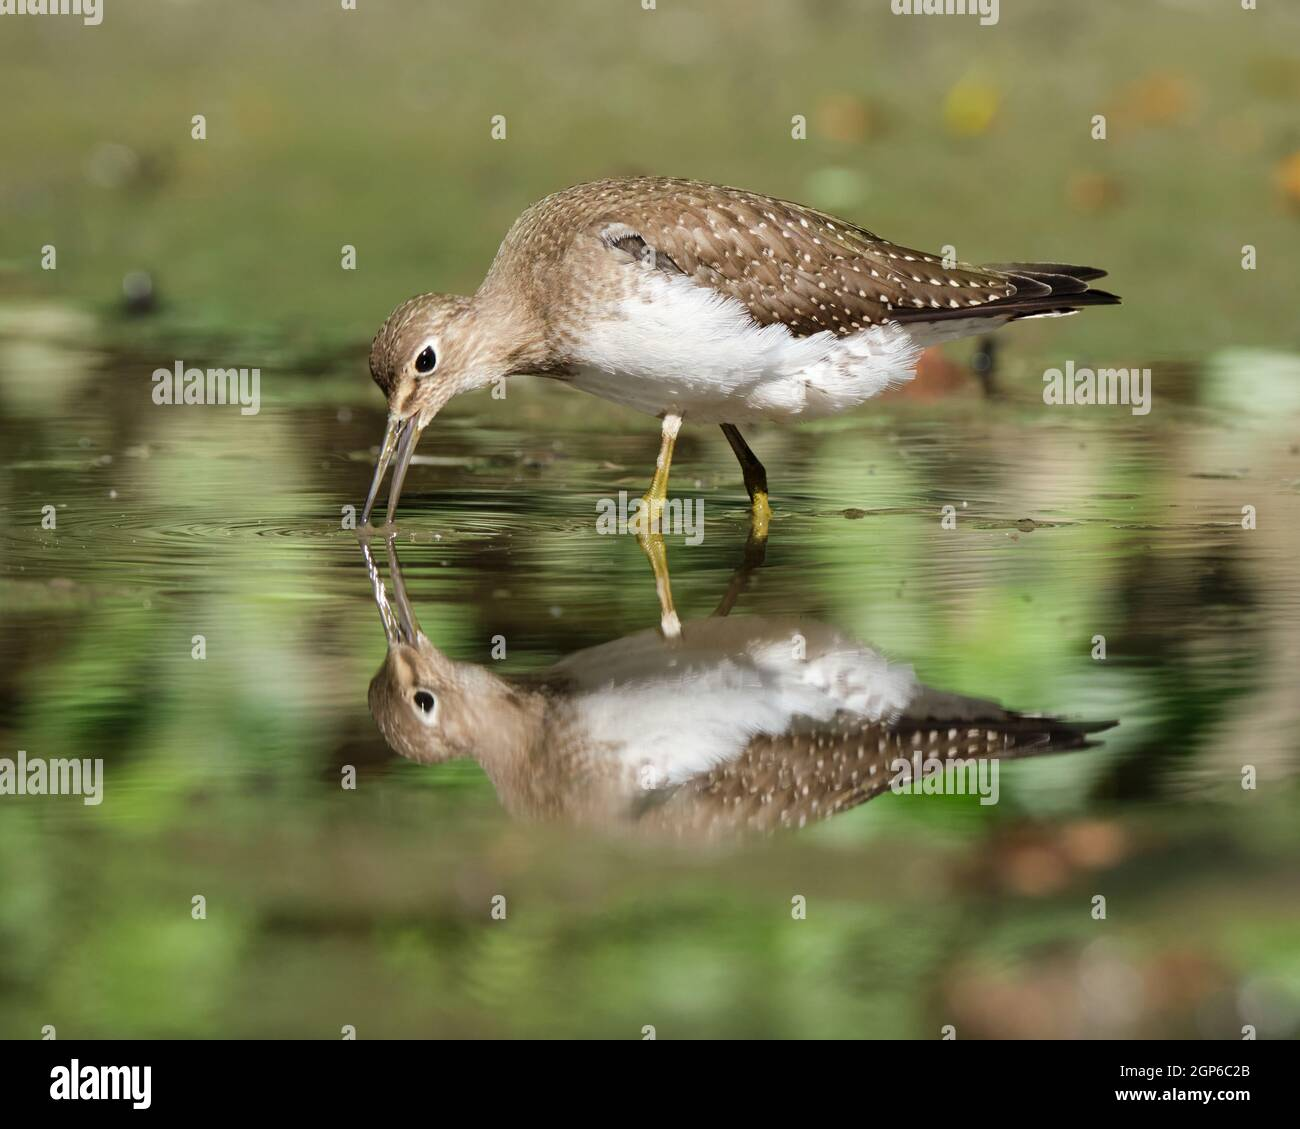 a-solitary-sandpiper-tringa-solitaria-looking-around-for-food-in-a-small-pond-beak-open-touching-water-with-reflection-2GP6C2B.jpg